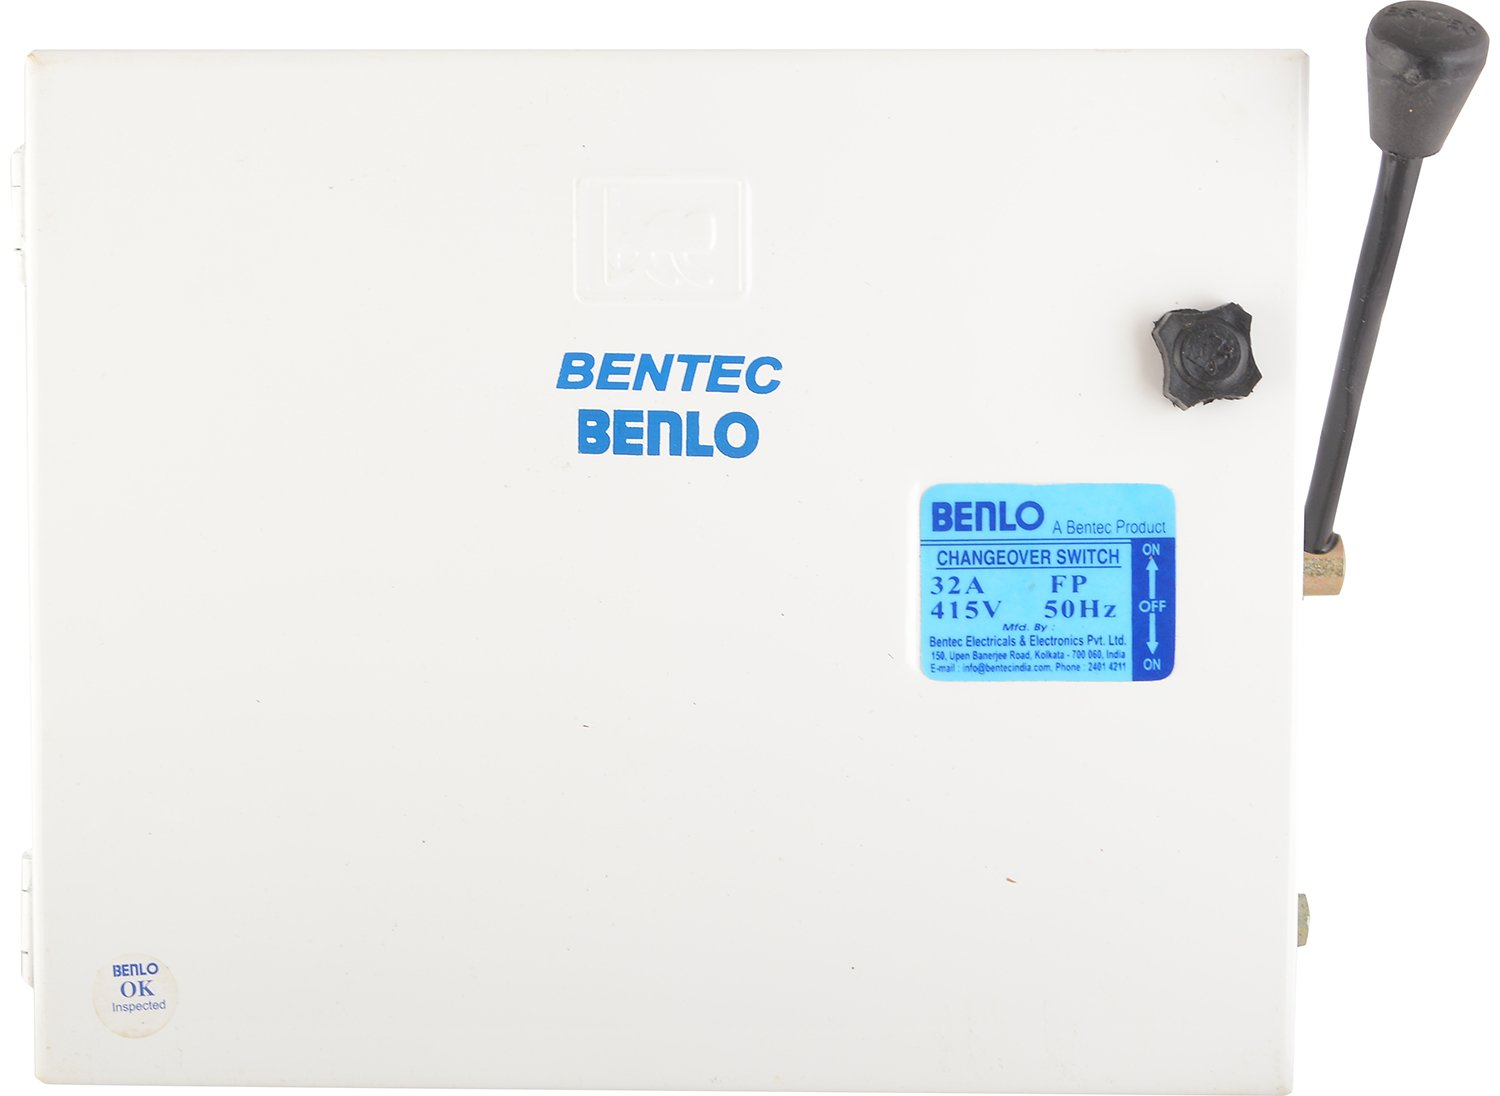 Benlo Metal 32 Amp 415 Volts 4 Pole Change Overswitch White 2 Way Changeover Switch Home Improvement